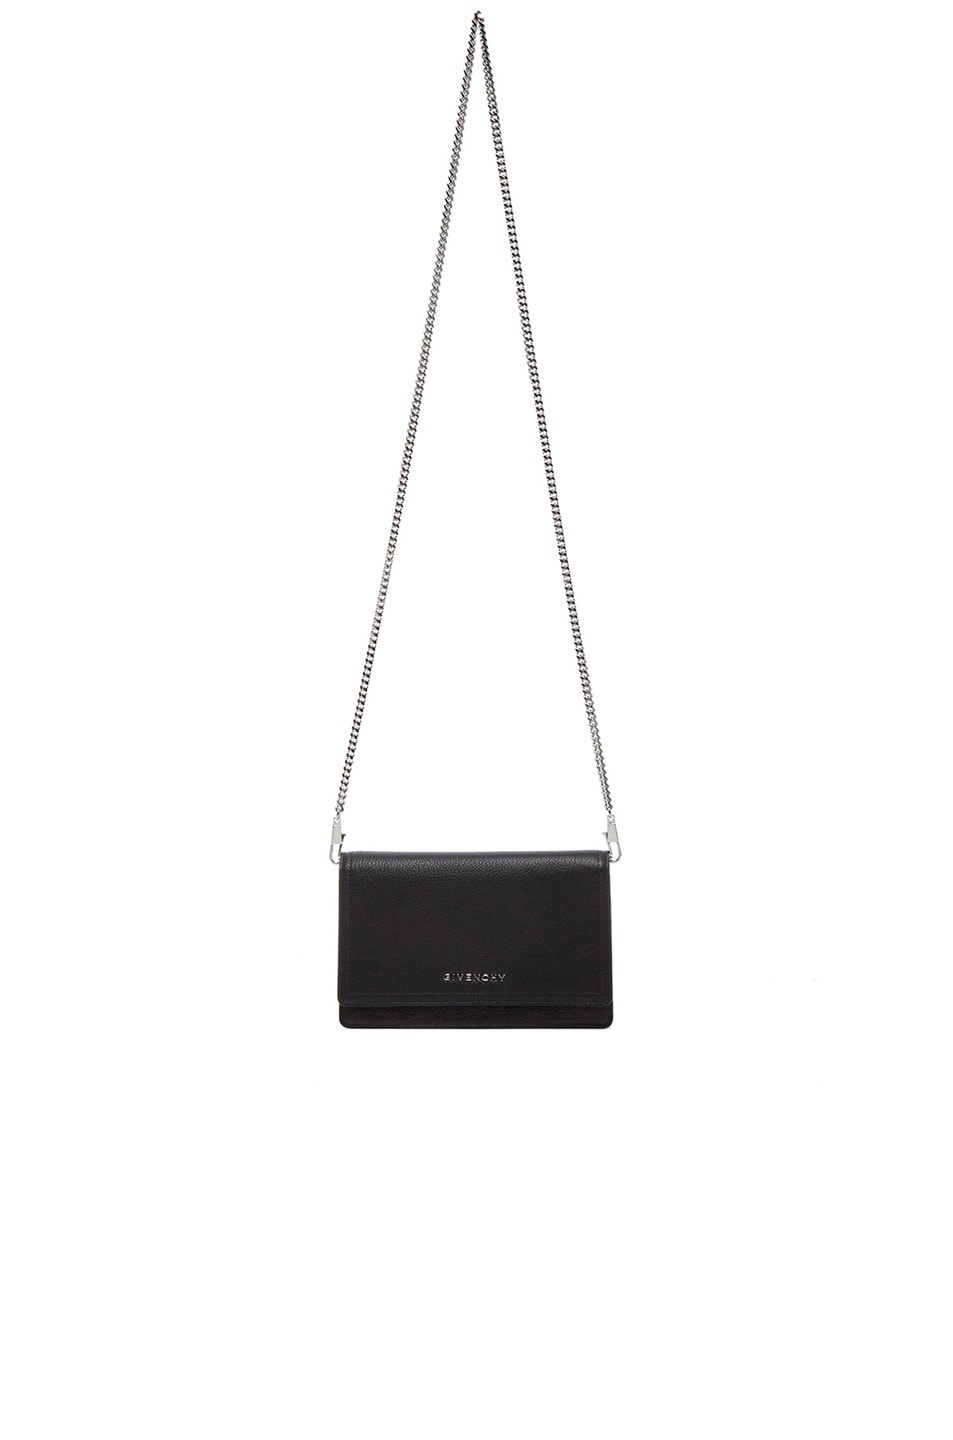 Image 1 of GIVENCHY Pandora Chain Wallet in Black